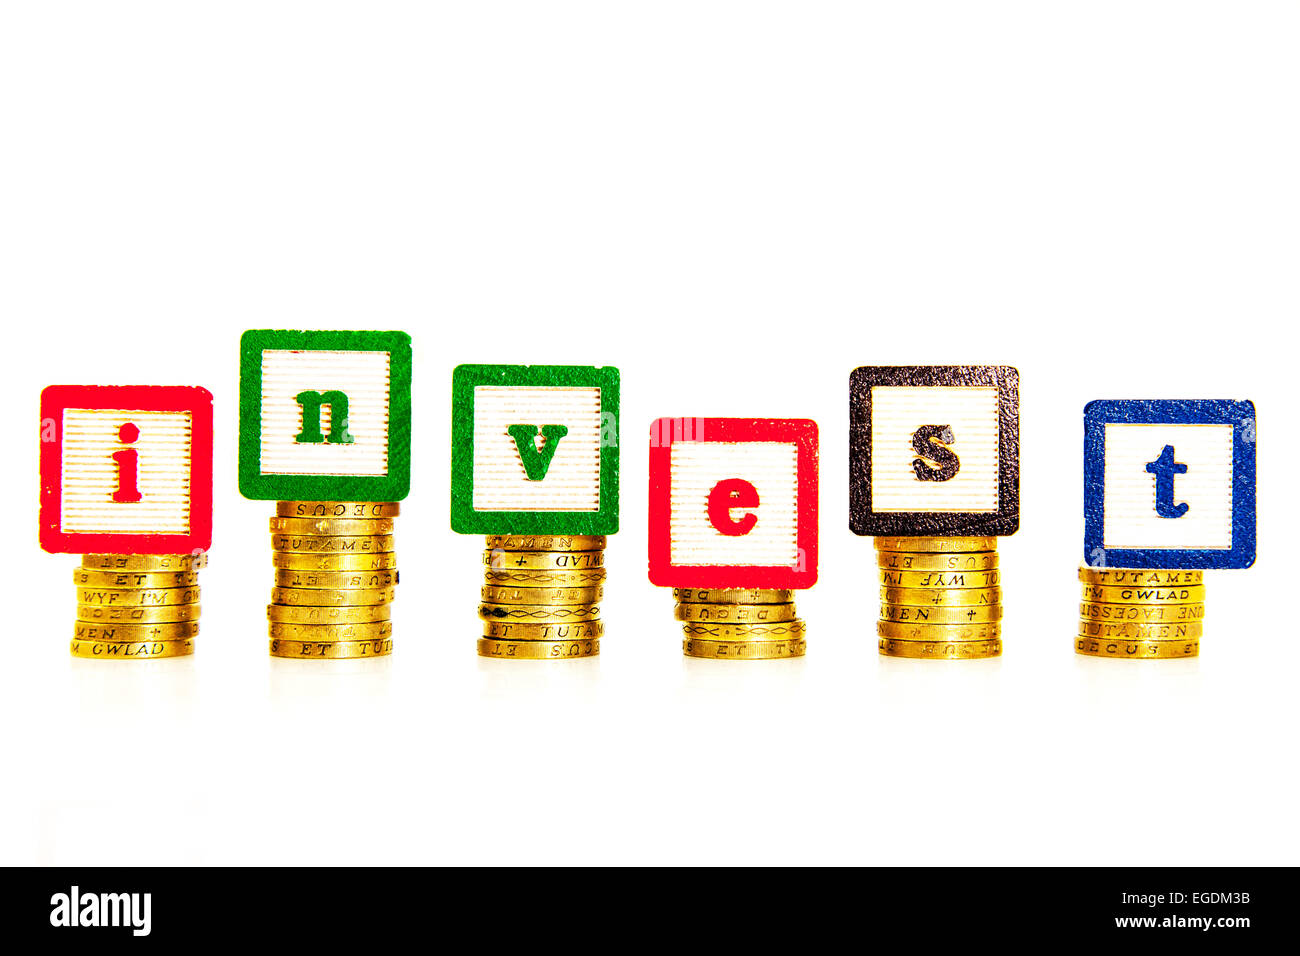 return on investment as a cash These risks mean it is important to consider whether a bond is an appropriate alternative investment for your cash you should also try to diversify among individual bonds, perhaps by holding a number of securities from different issuers  pre-inception returns are not actual returns and return calculation methodologies utilized by.